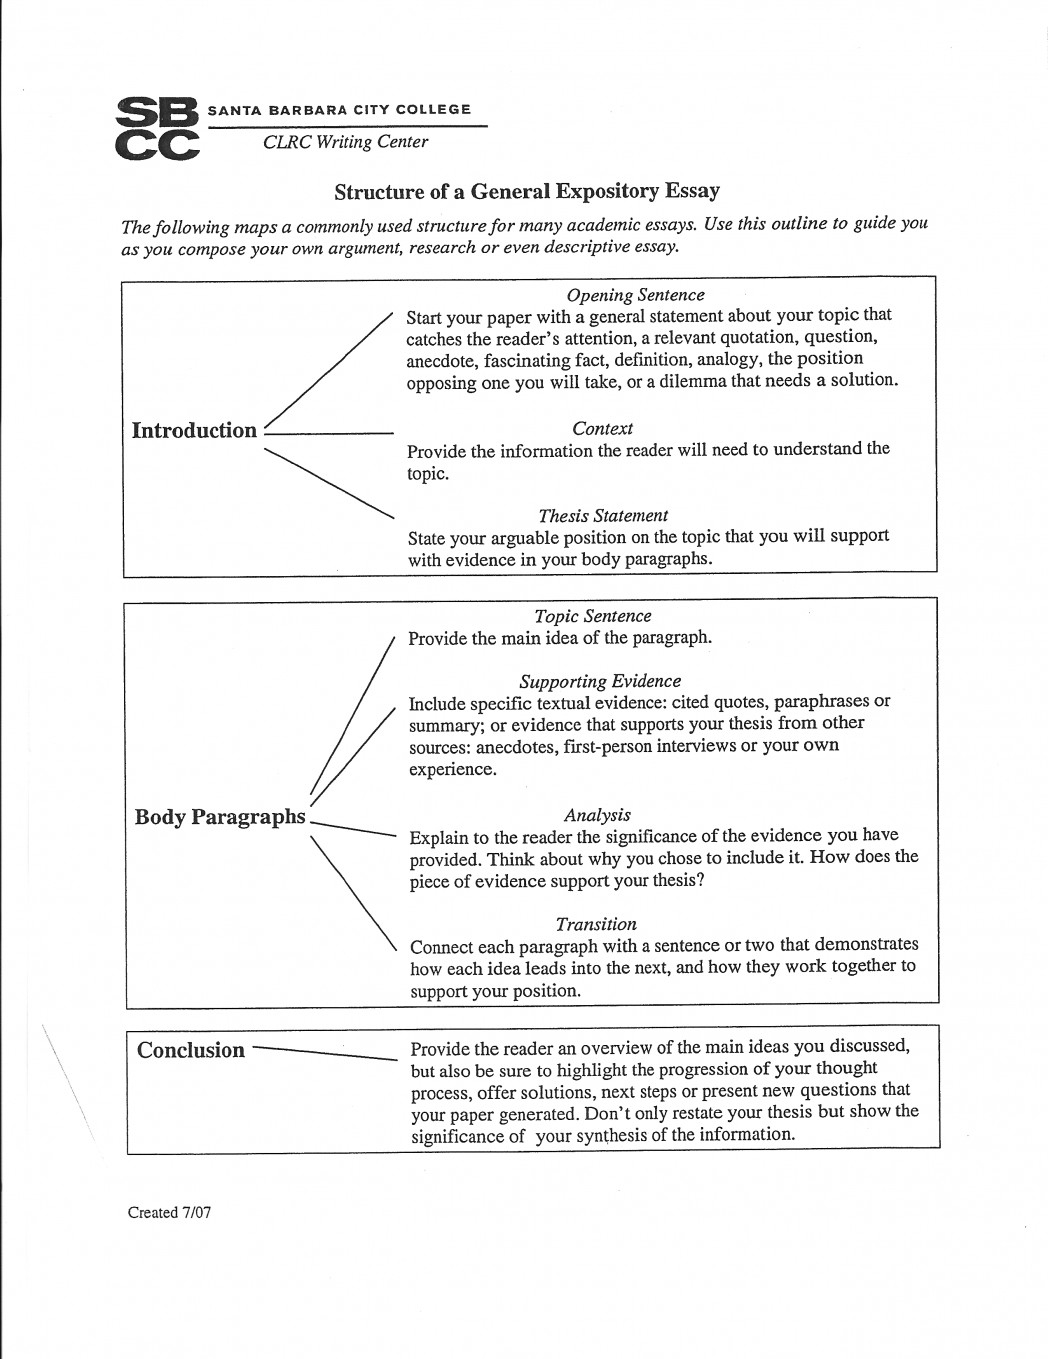 Effective leads for informational essay